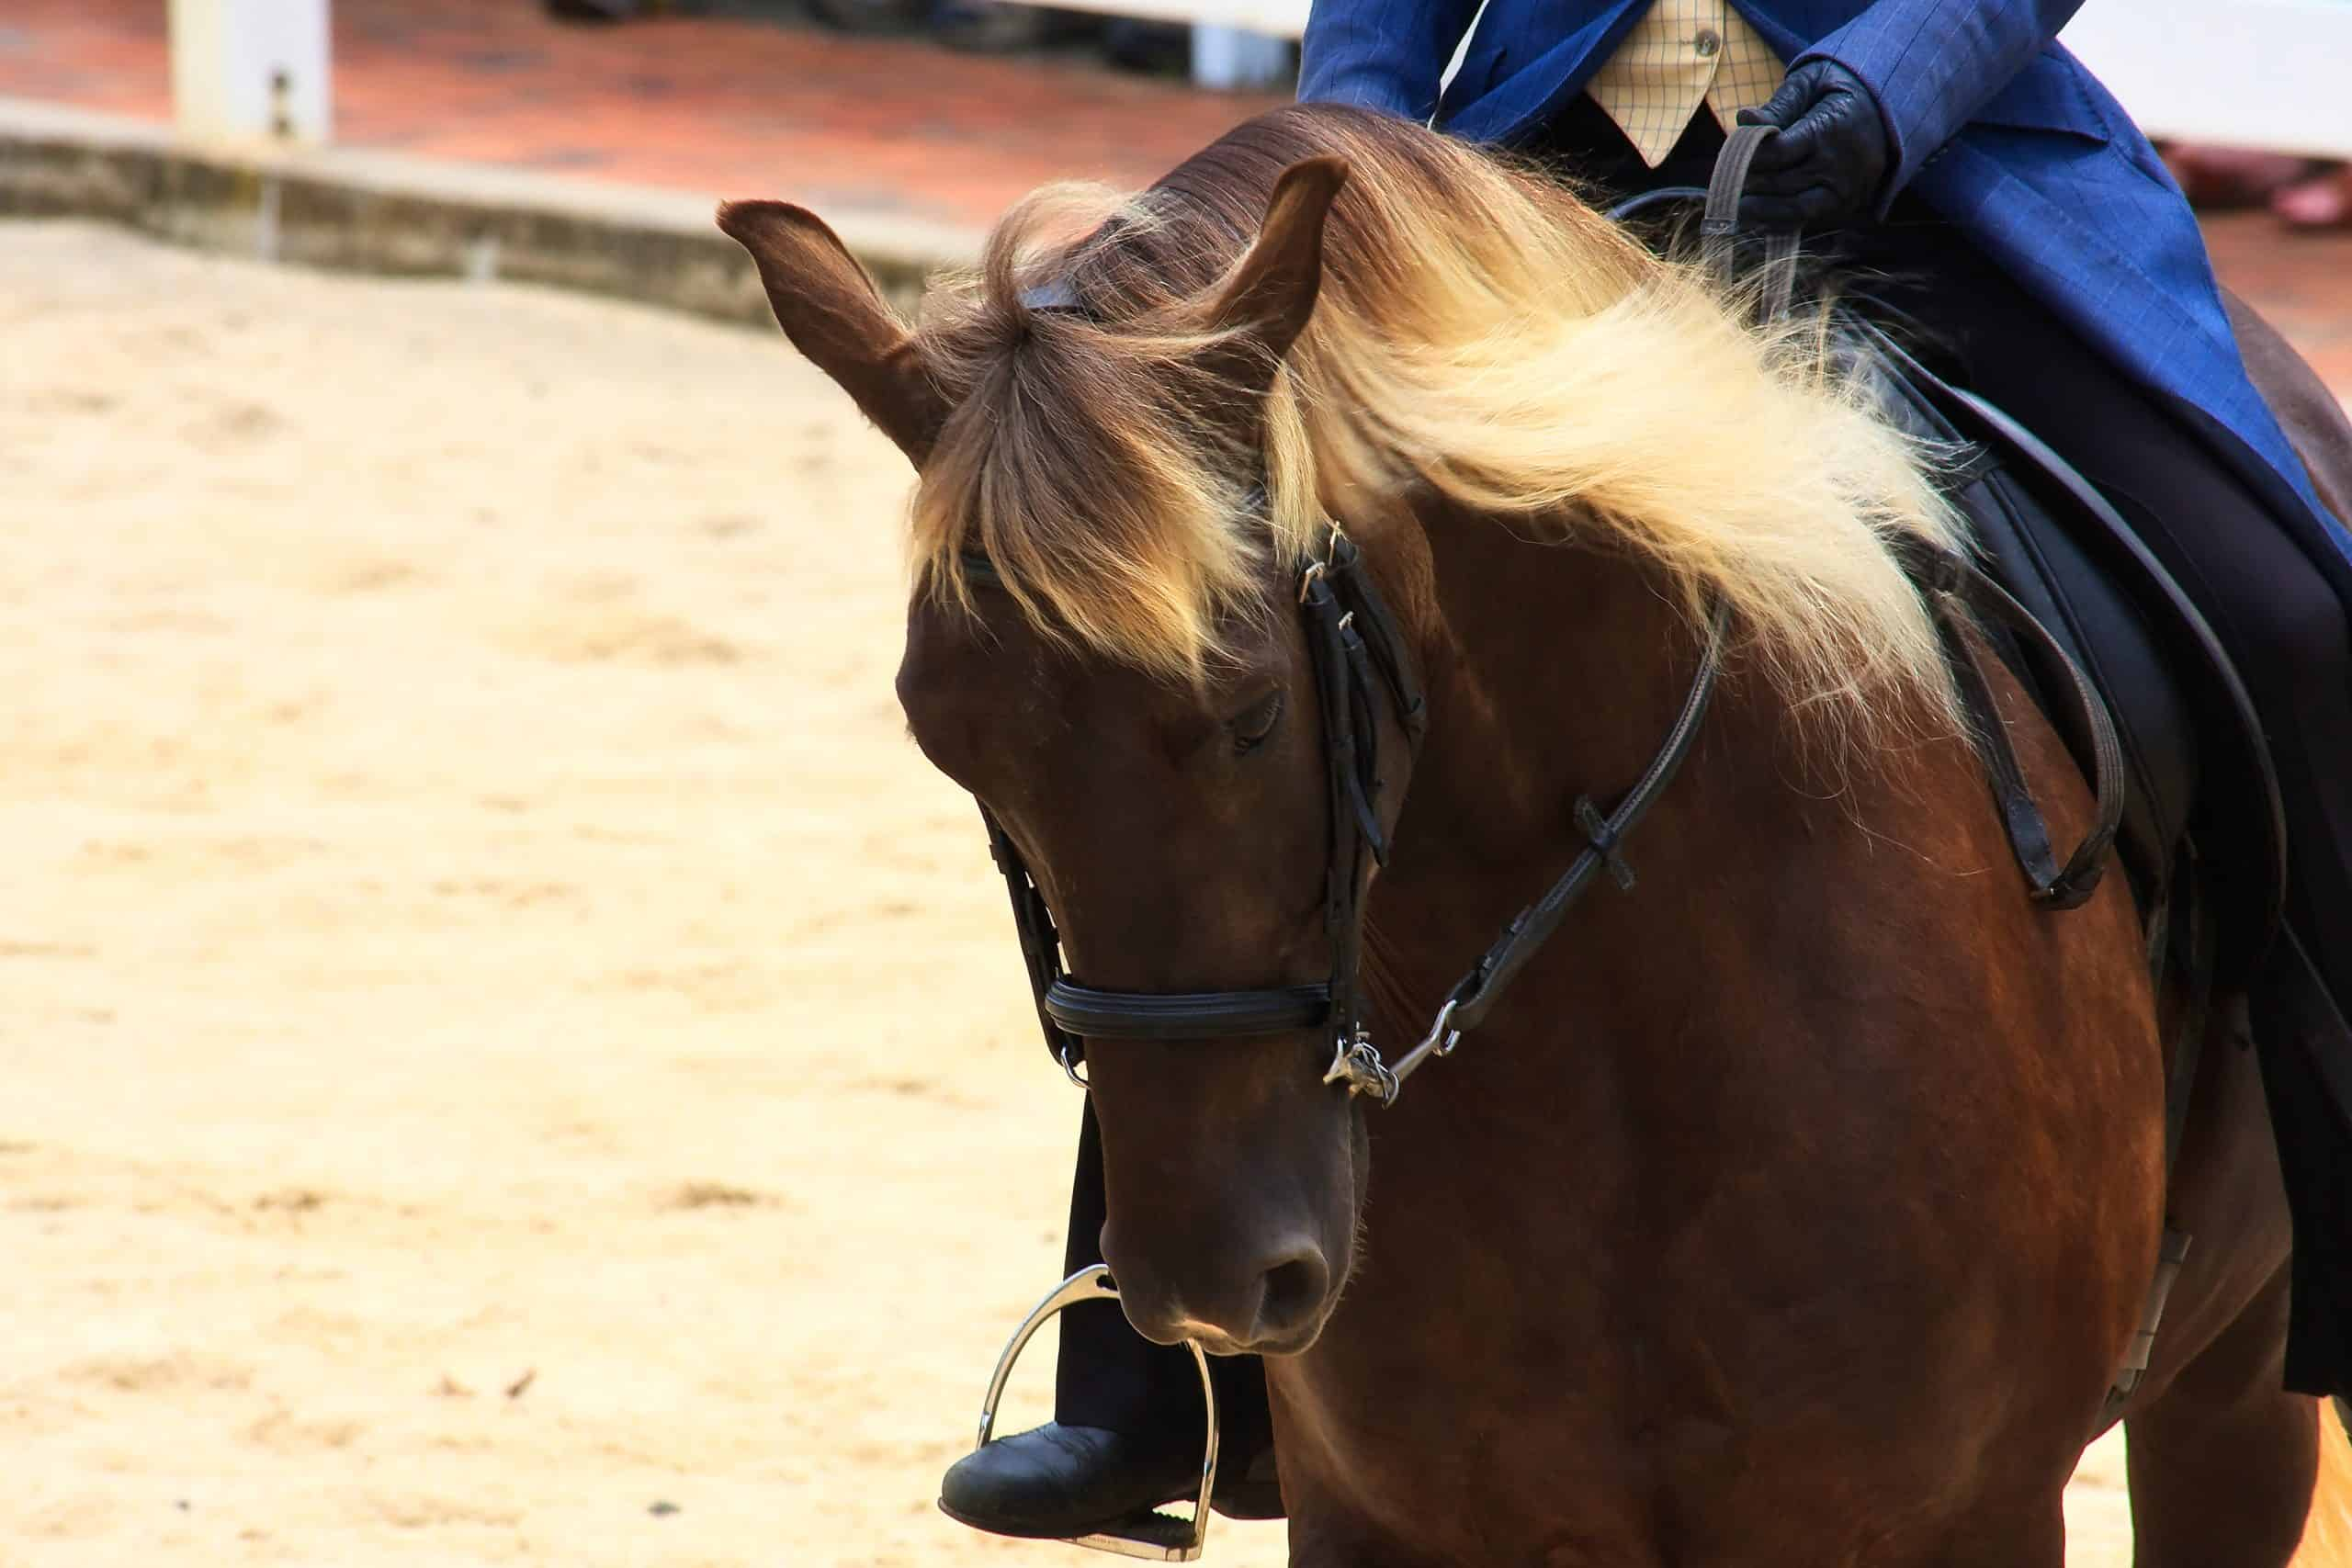 Rocky Mountain Horse breed being ridden